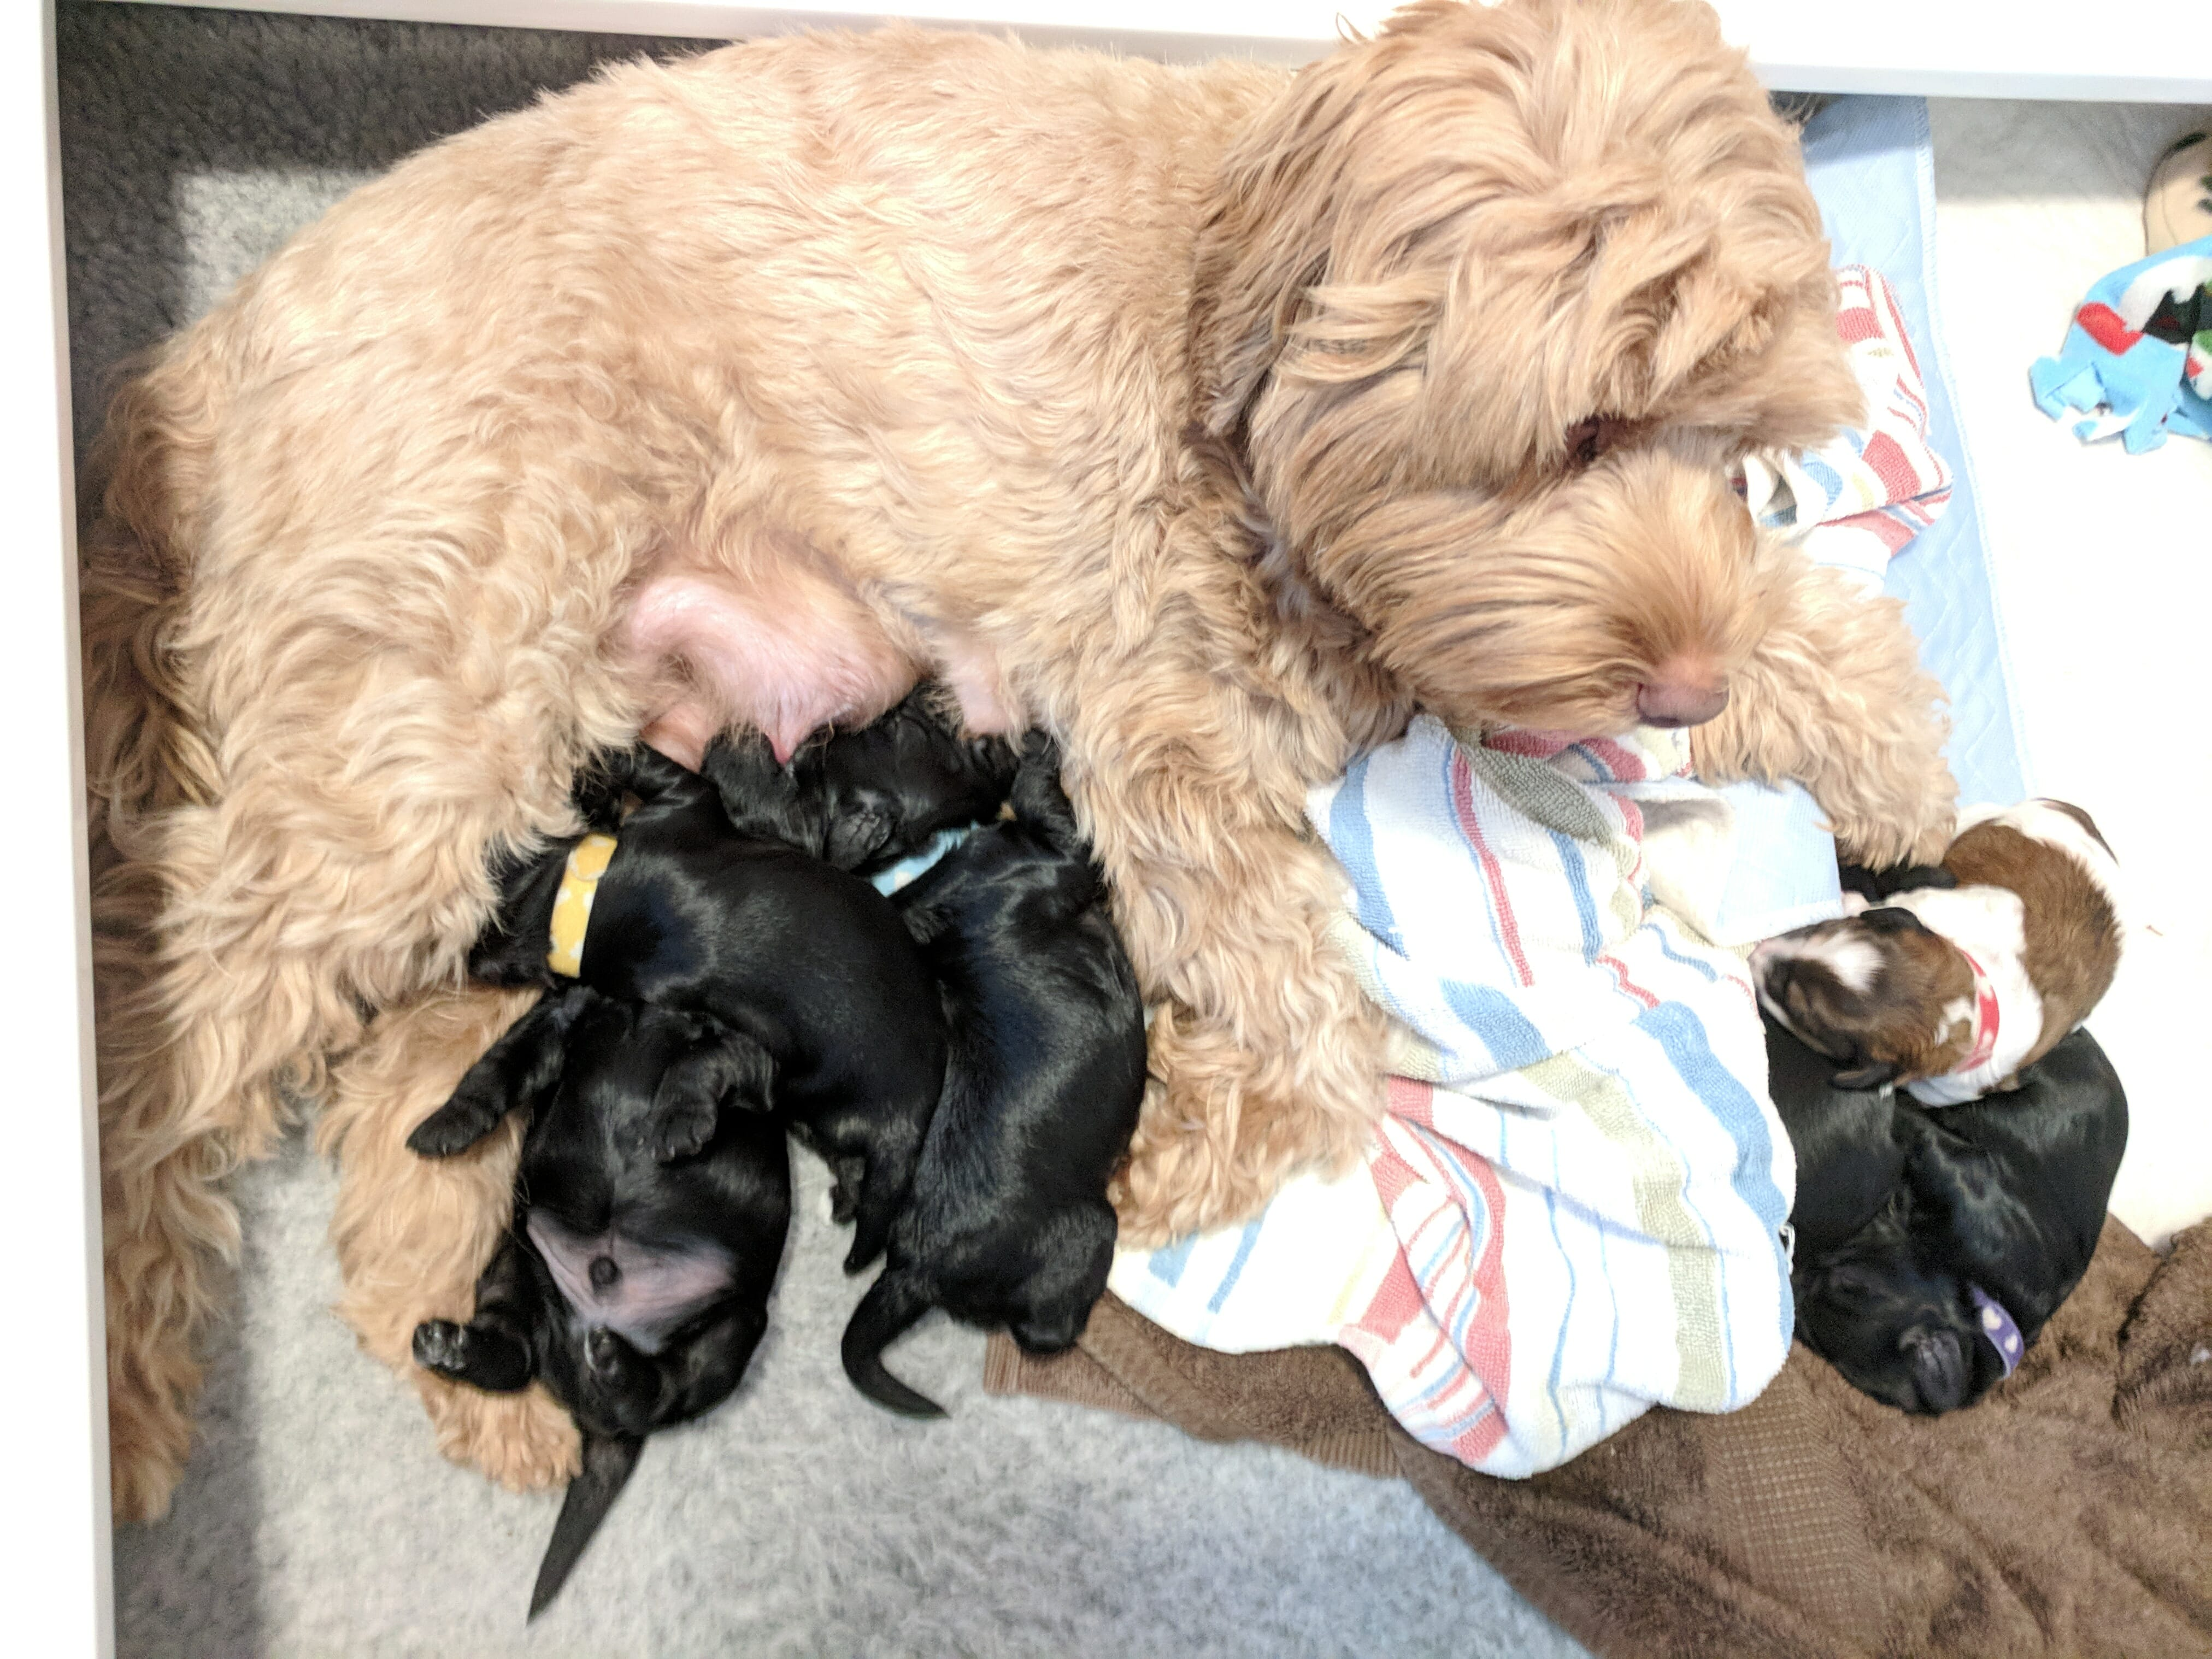 Pippa, labradoodle Mom with her puppies suckling at 2 weeks old